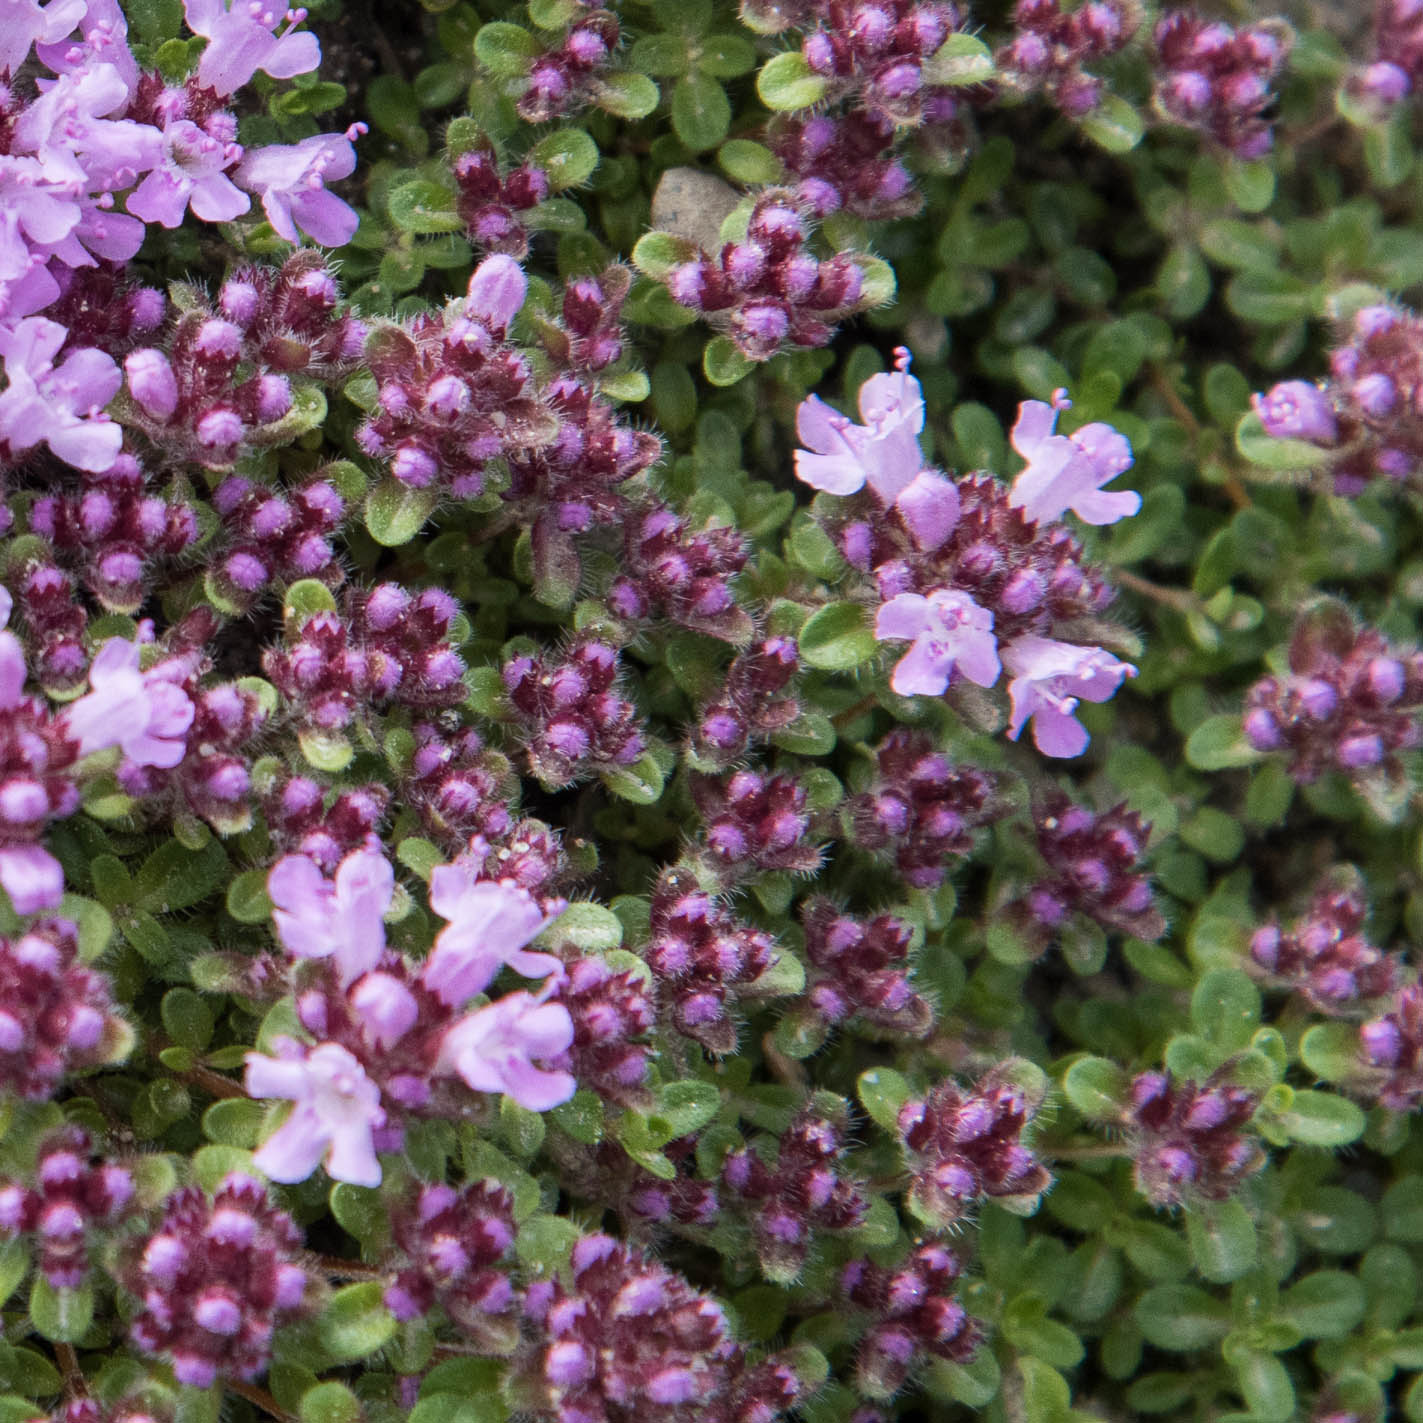 BRECKLAND THYME AND BROAD-LEAVED THYME